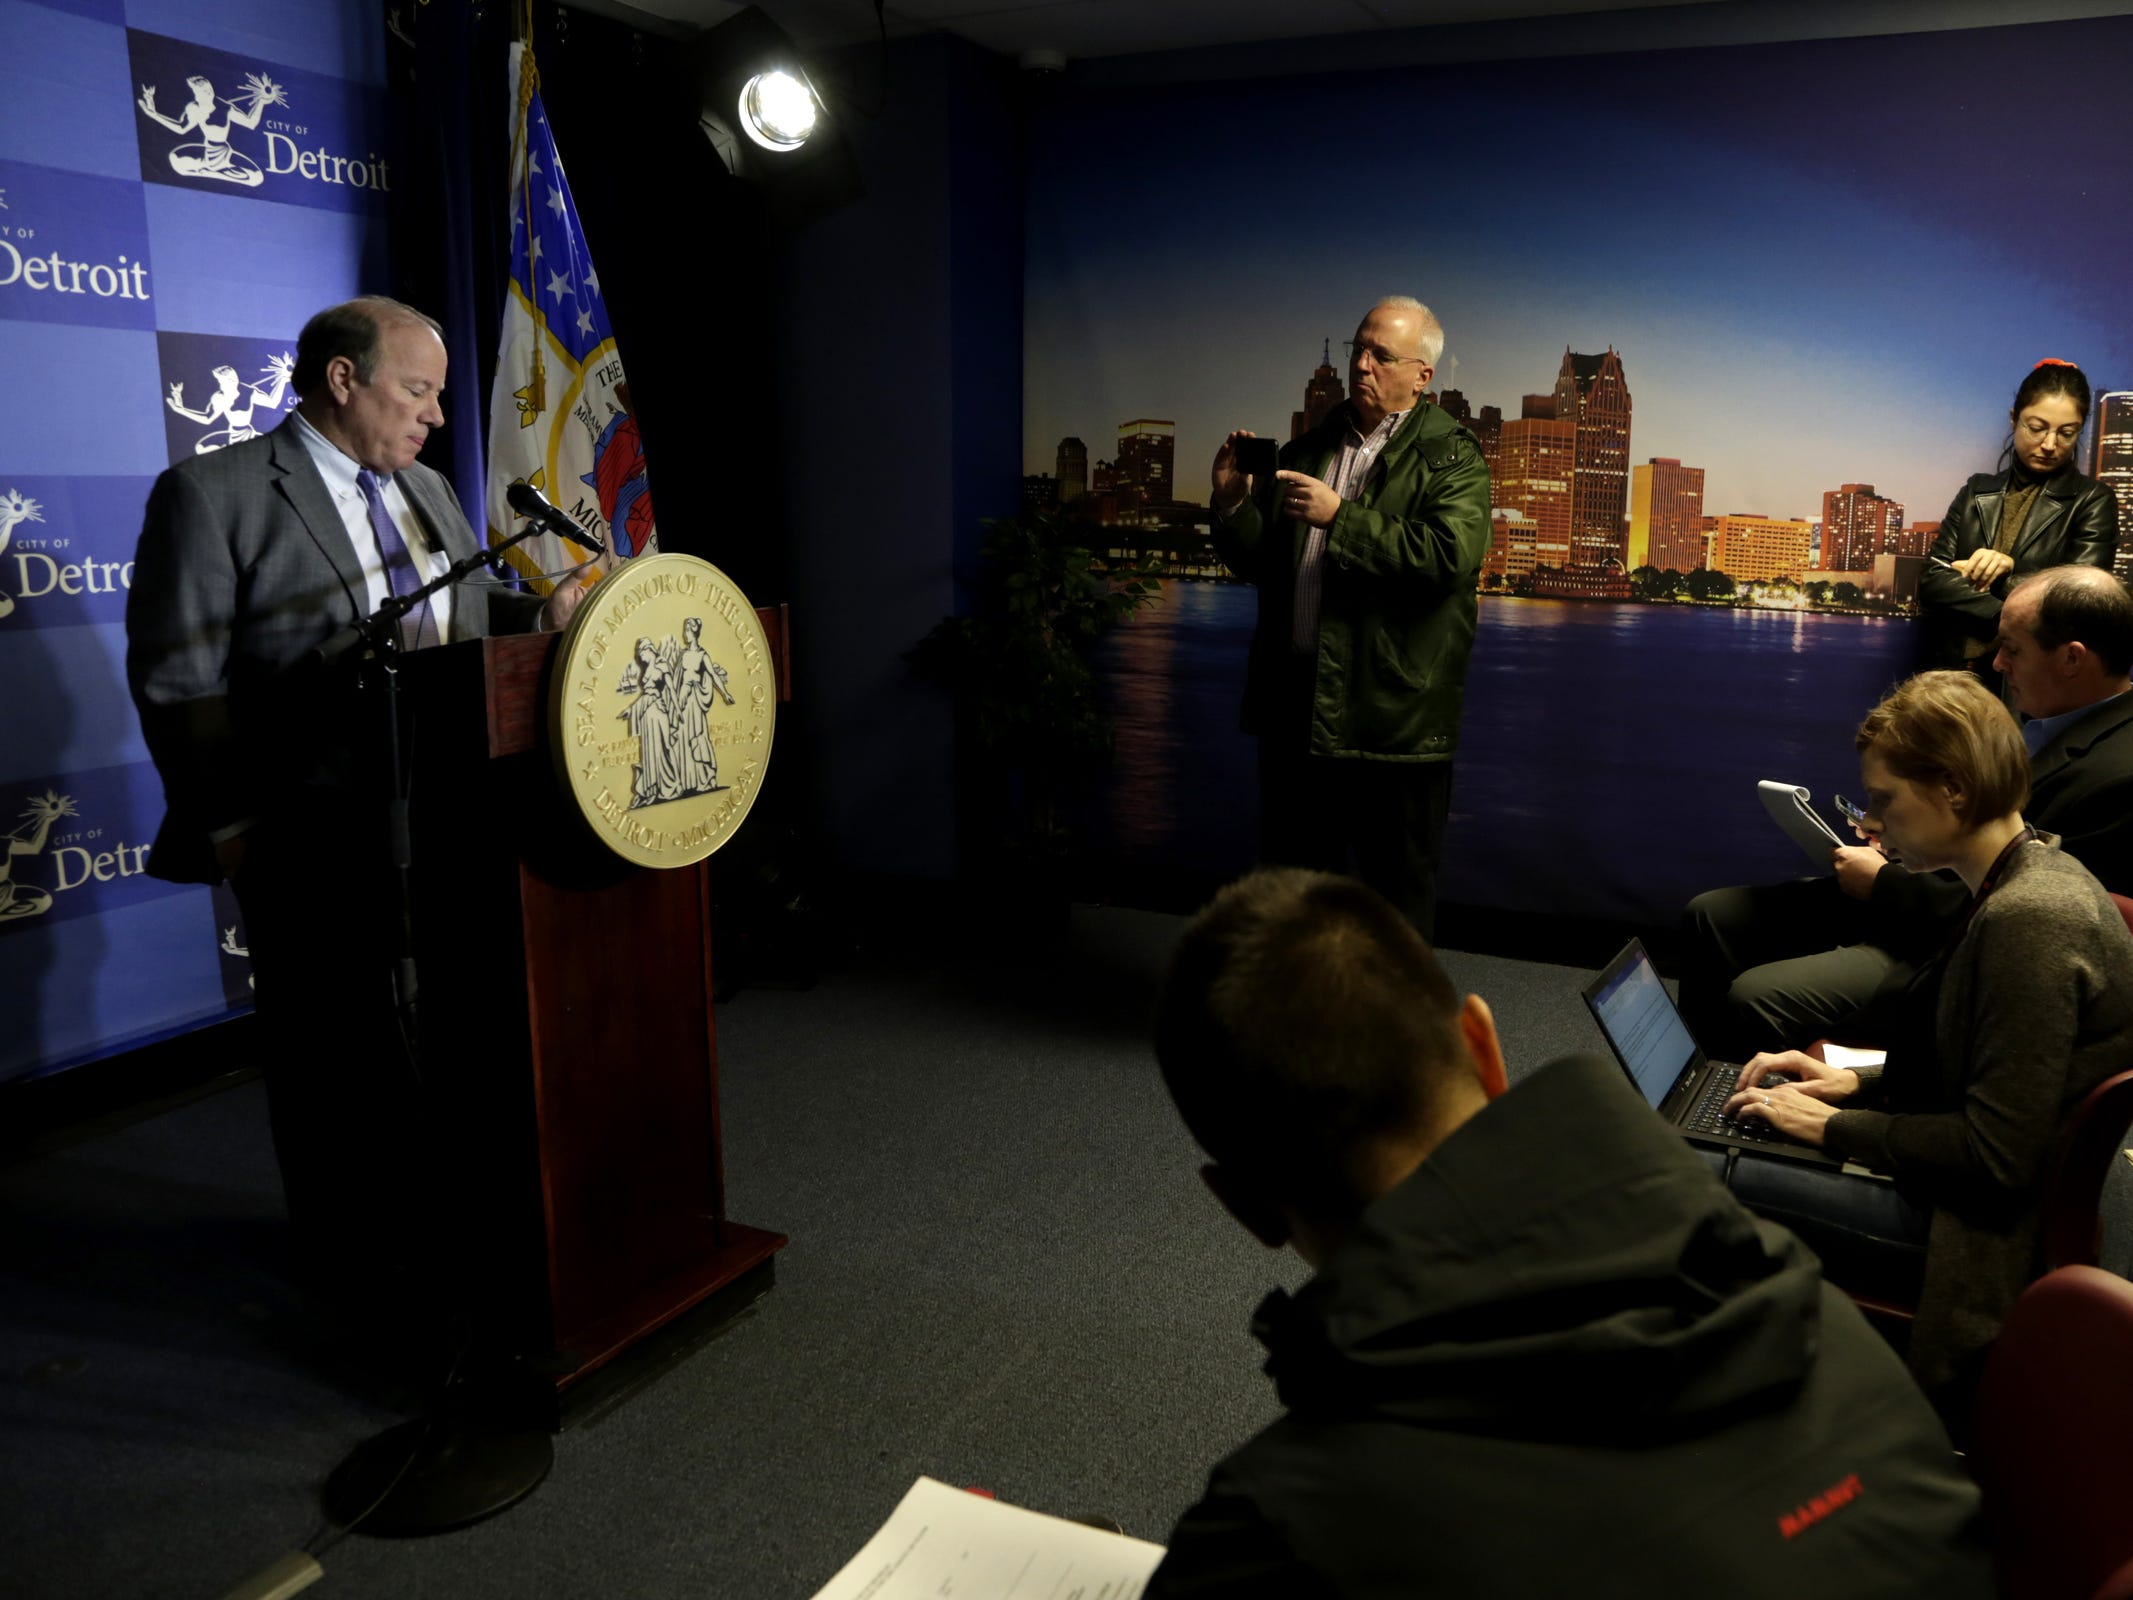 Detroit Mayor Mike Duggan held a press conference Monday, Nov. 26, 2018 at Detroit City Hall. Duggan announced that he has asked the state police to open an investigation into the conduct of Robert Carmack, a city businessman whose agitation campaign against Duggan went public earlier this month